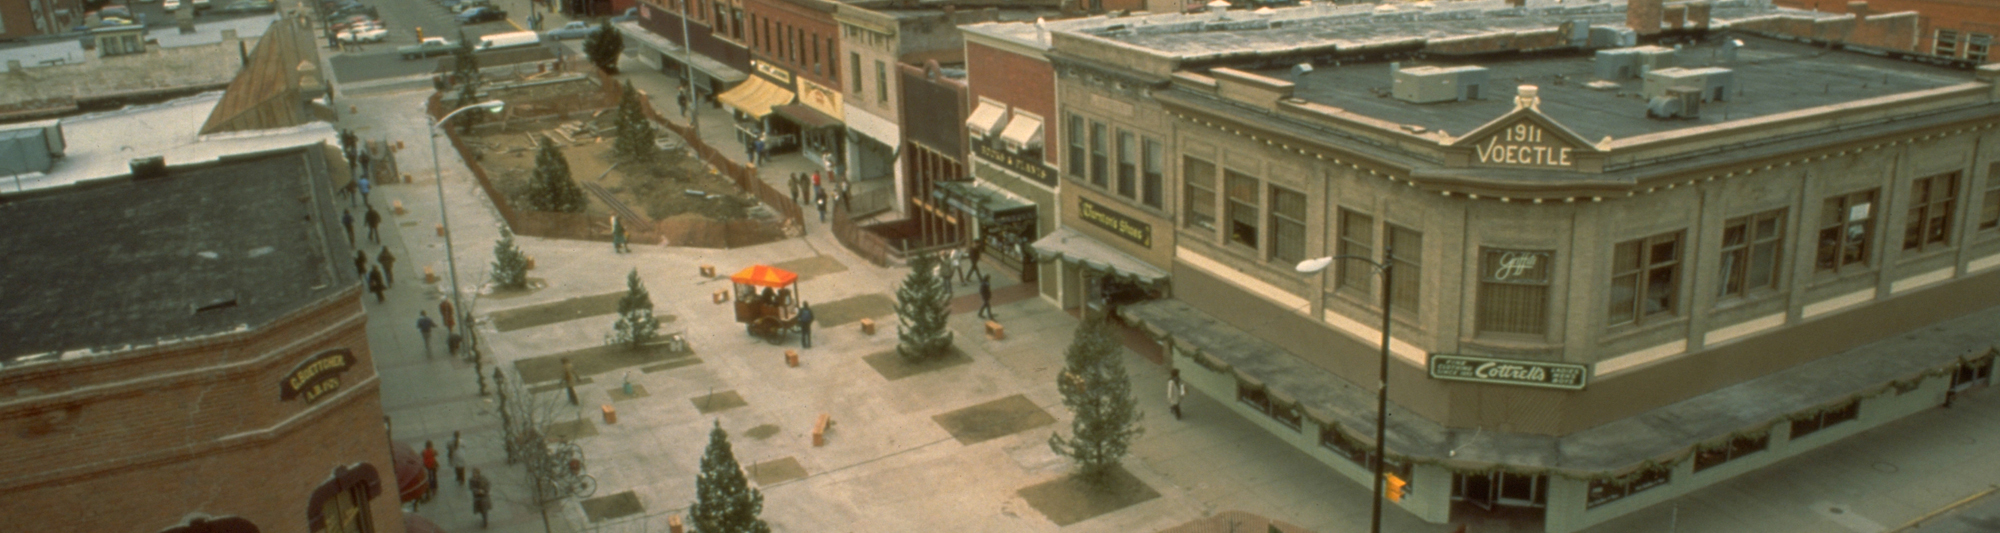 Construction of the Pearl Street Mall